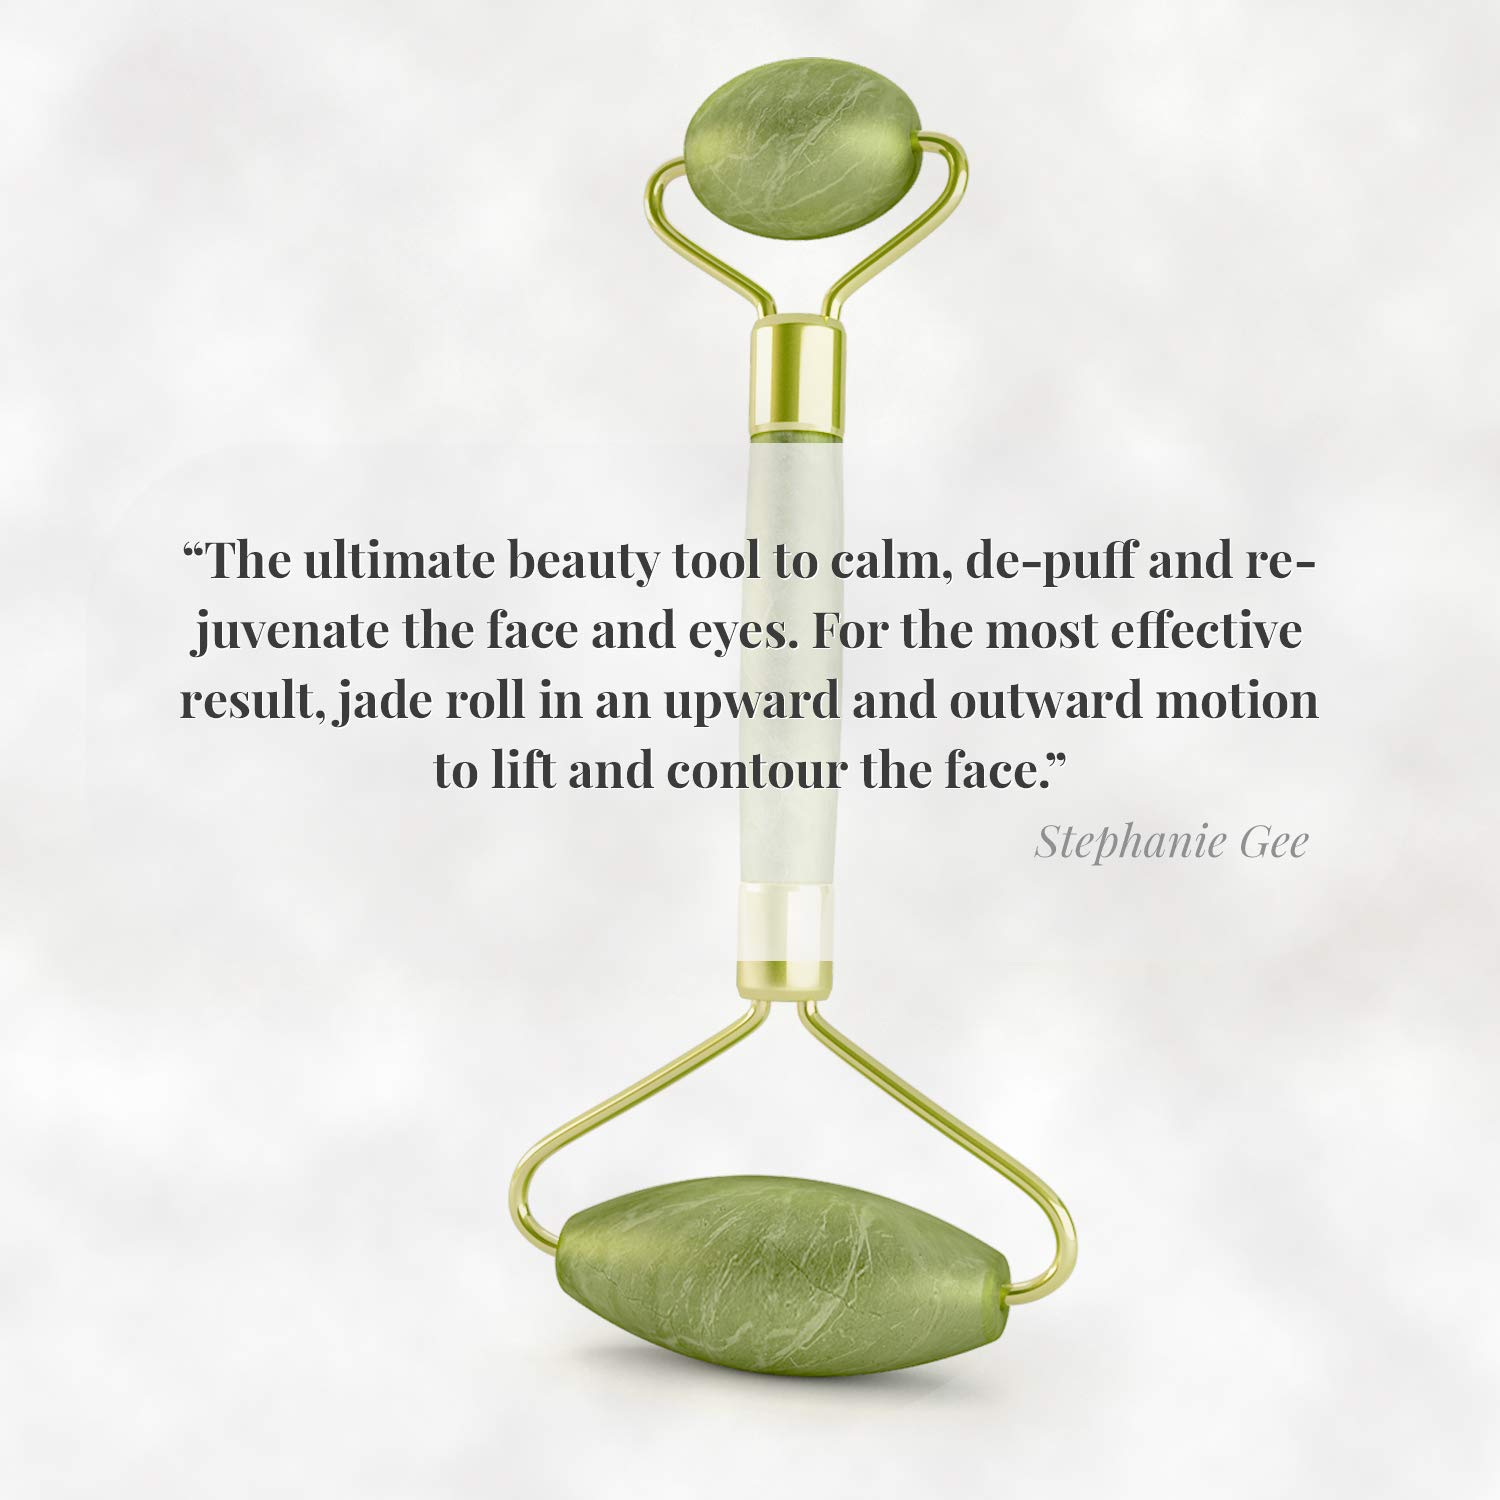 Natural 2 in 1 Jade Roller For Face - Gua Sha Scraping - Aging Wrinkles, Puffiness Facial Skin Massager Treatment Therapy - Premium Authentic Himalayan Jade Stone - Include Bag by MAKADY (Image #5)